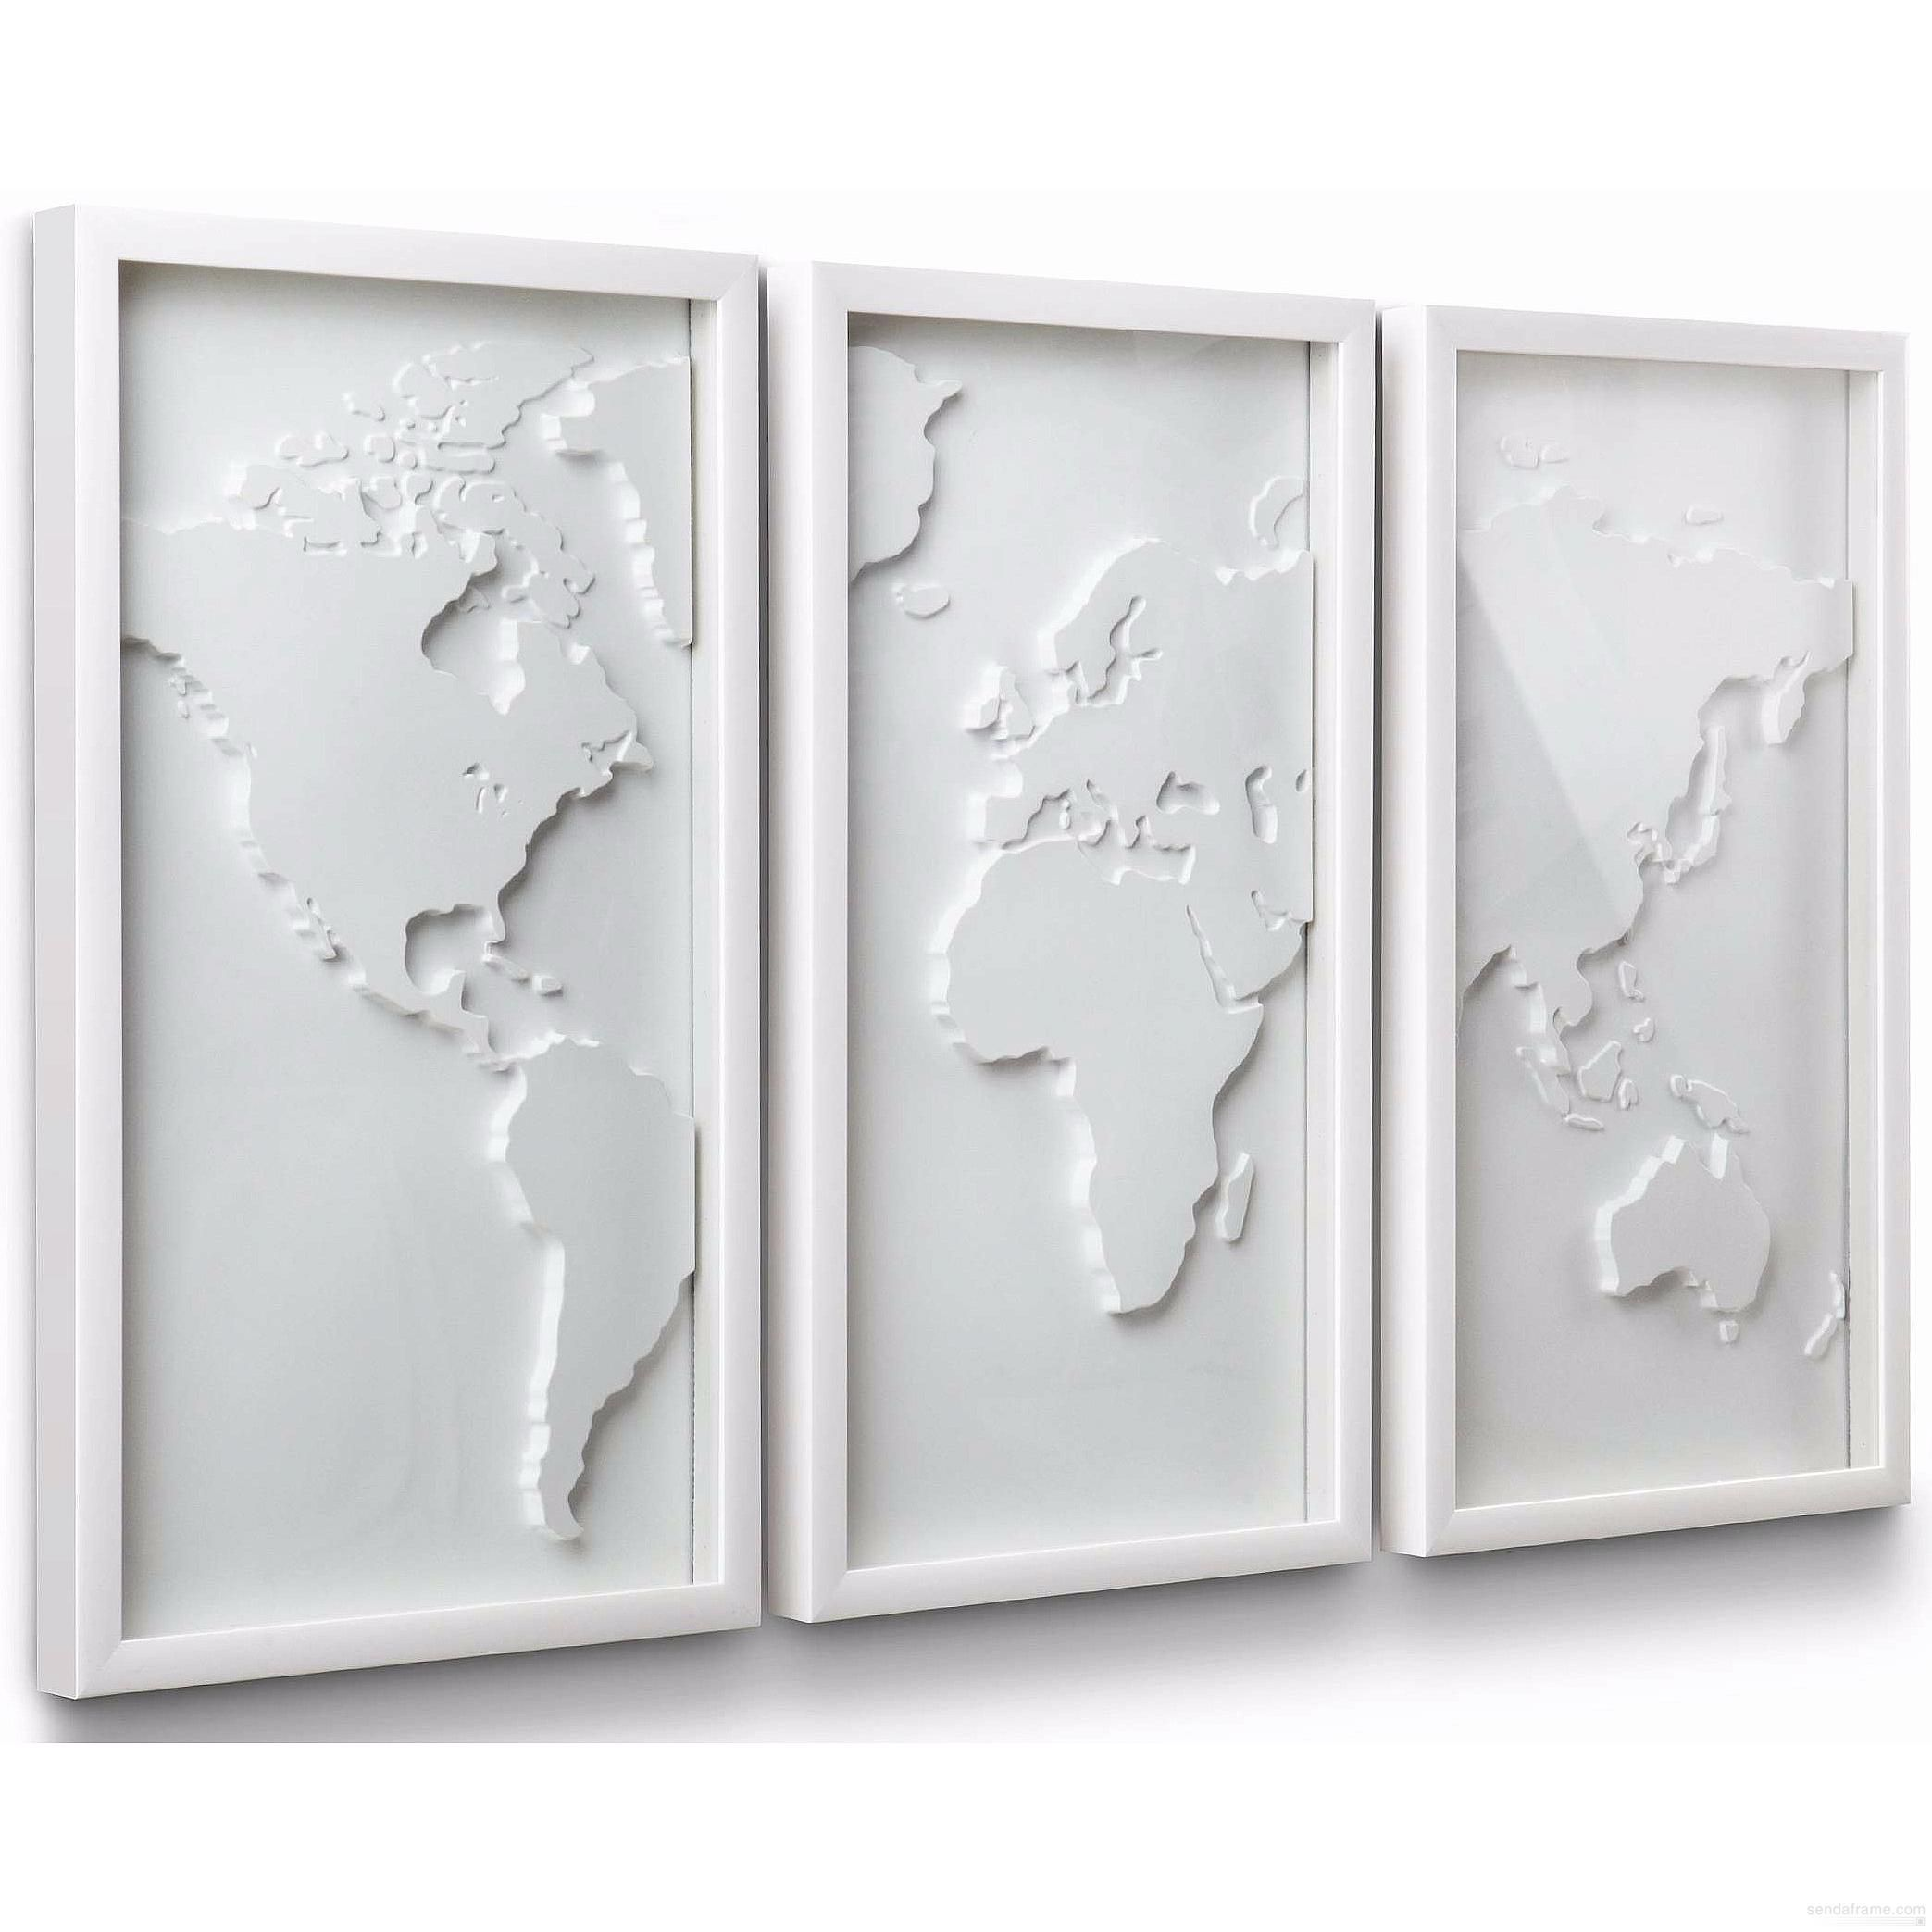 The original mapster 3 pc white relief world map by umbra picture the original mapster 3 pc white relief world map by umbra picture frames photo gumiabroncs Gallery